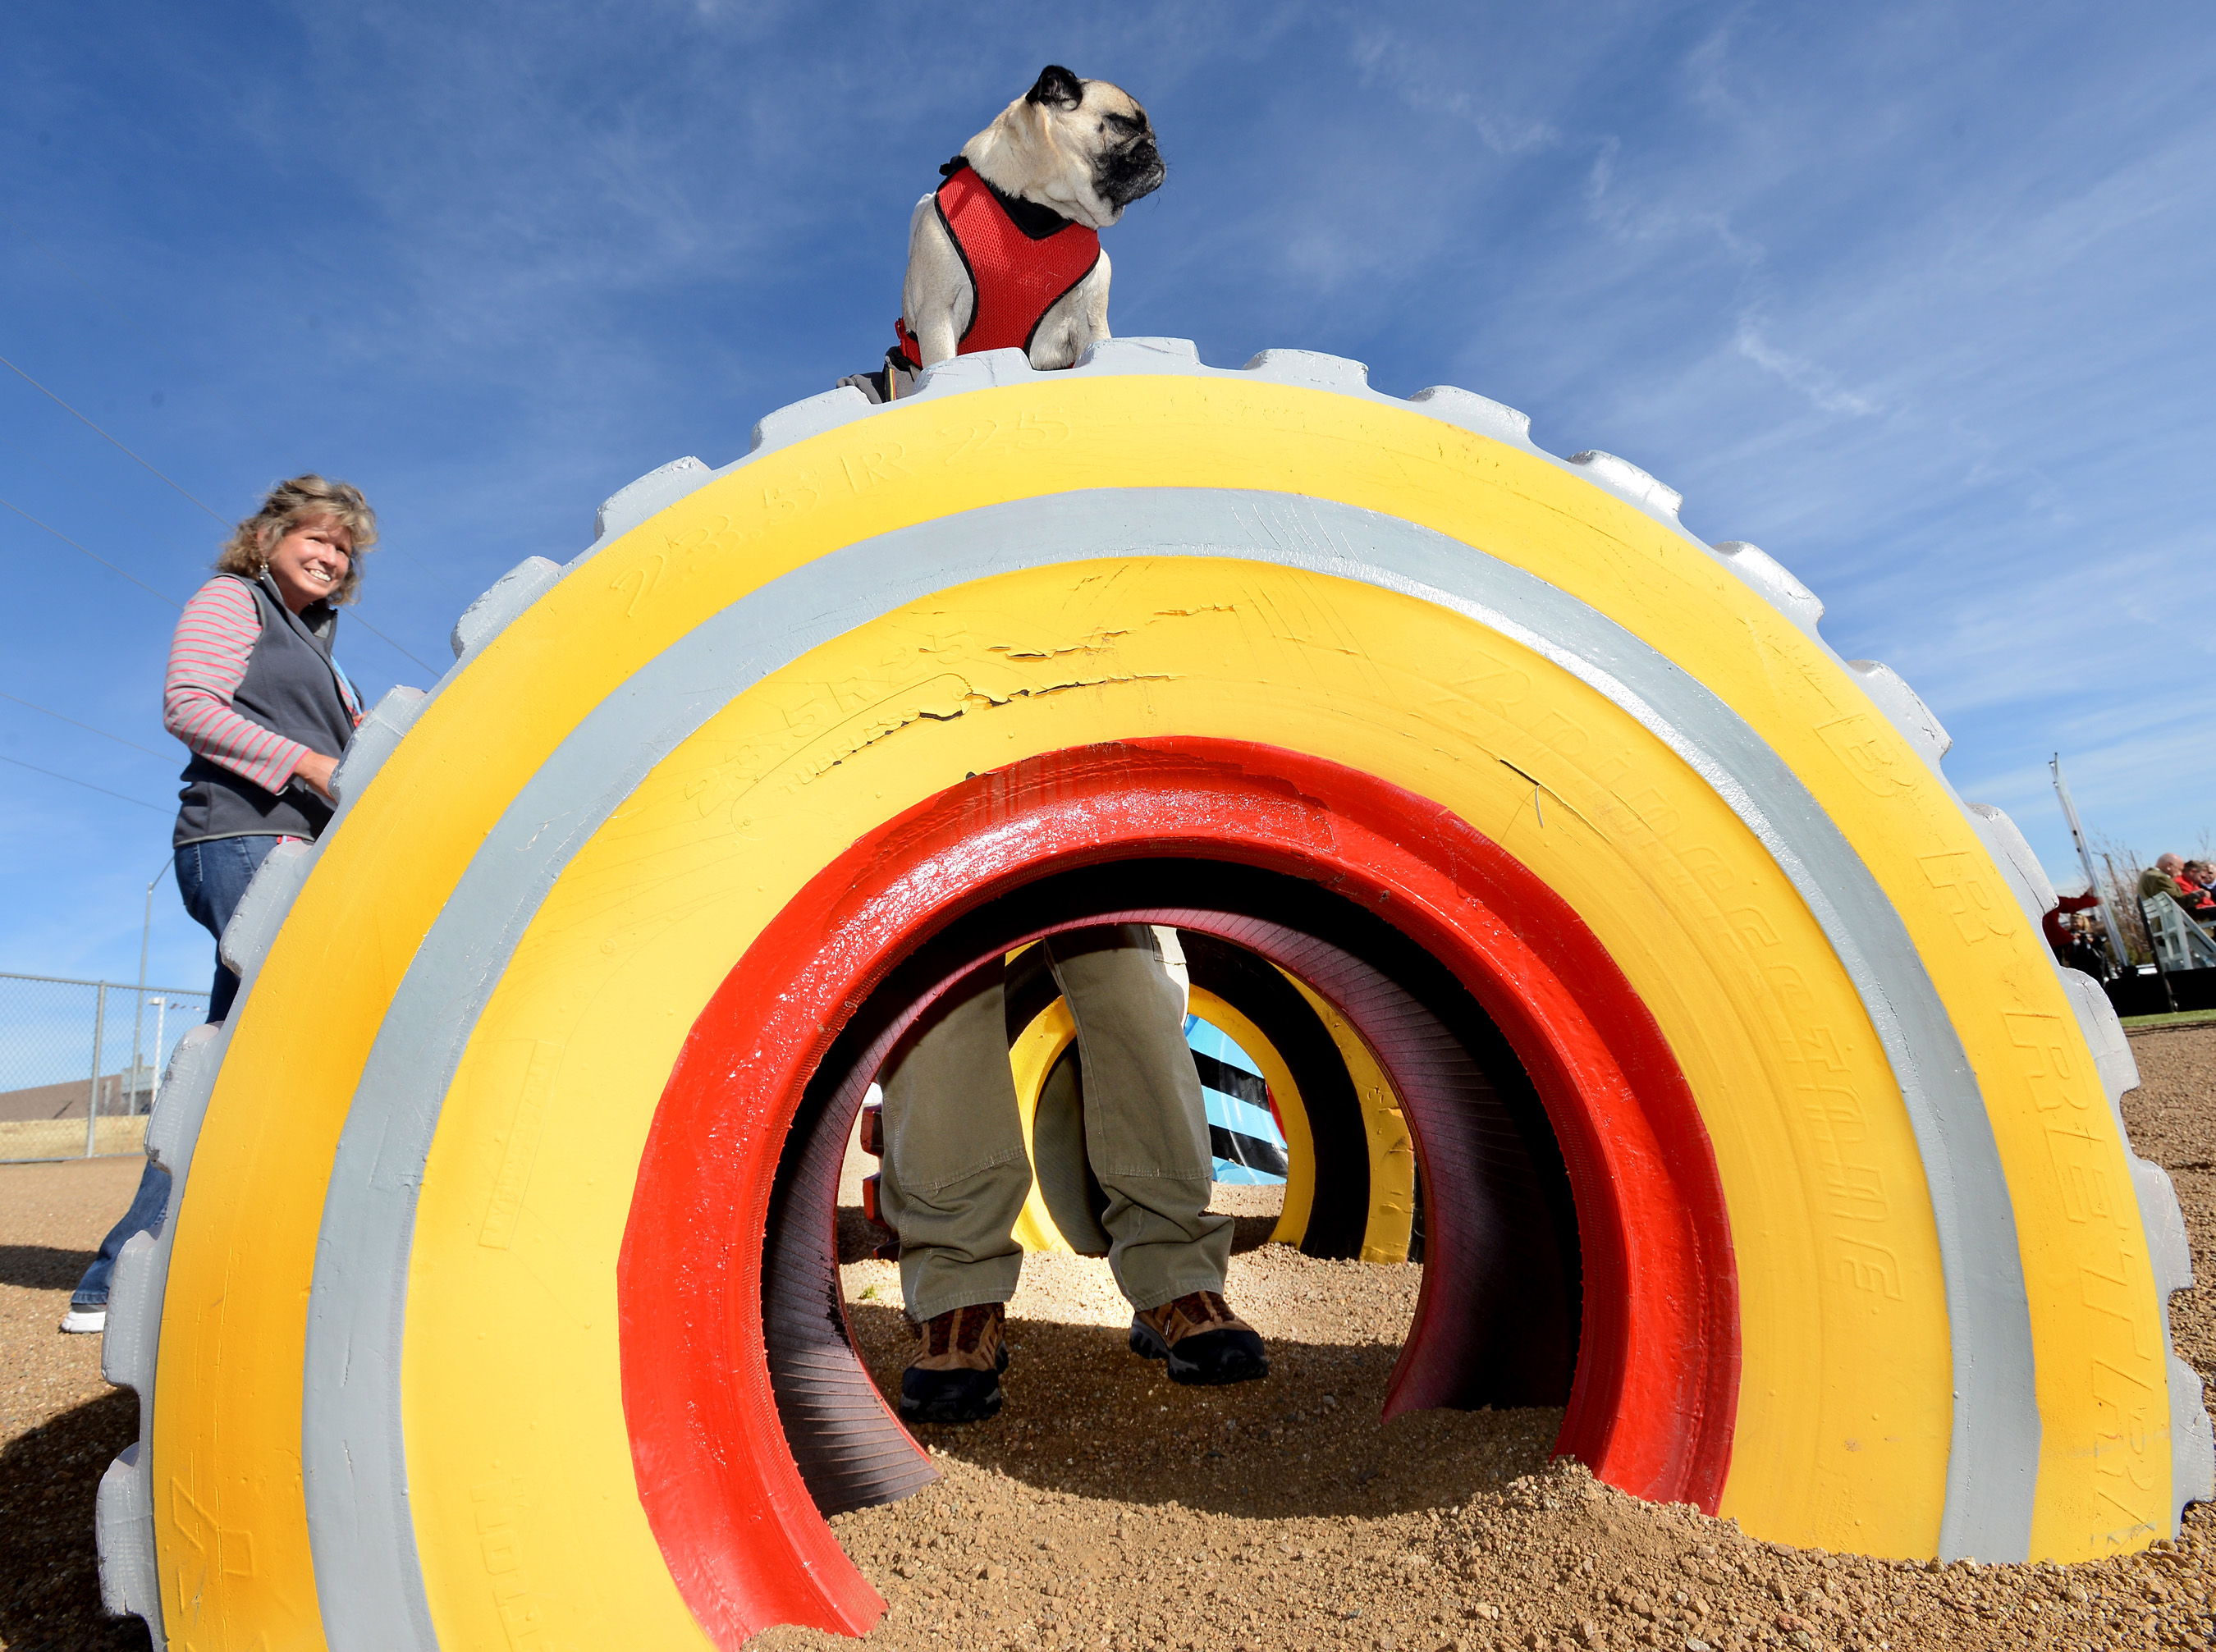 1 Million Dollar Fire Truck >> BENEFUL® UNVEILS FOURTH $500,000 DREAM DOG PARK RENOVATION IN PRESCOTT, ARIZONA